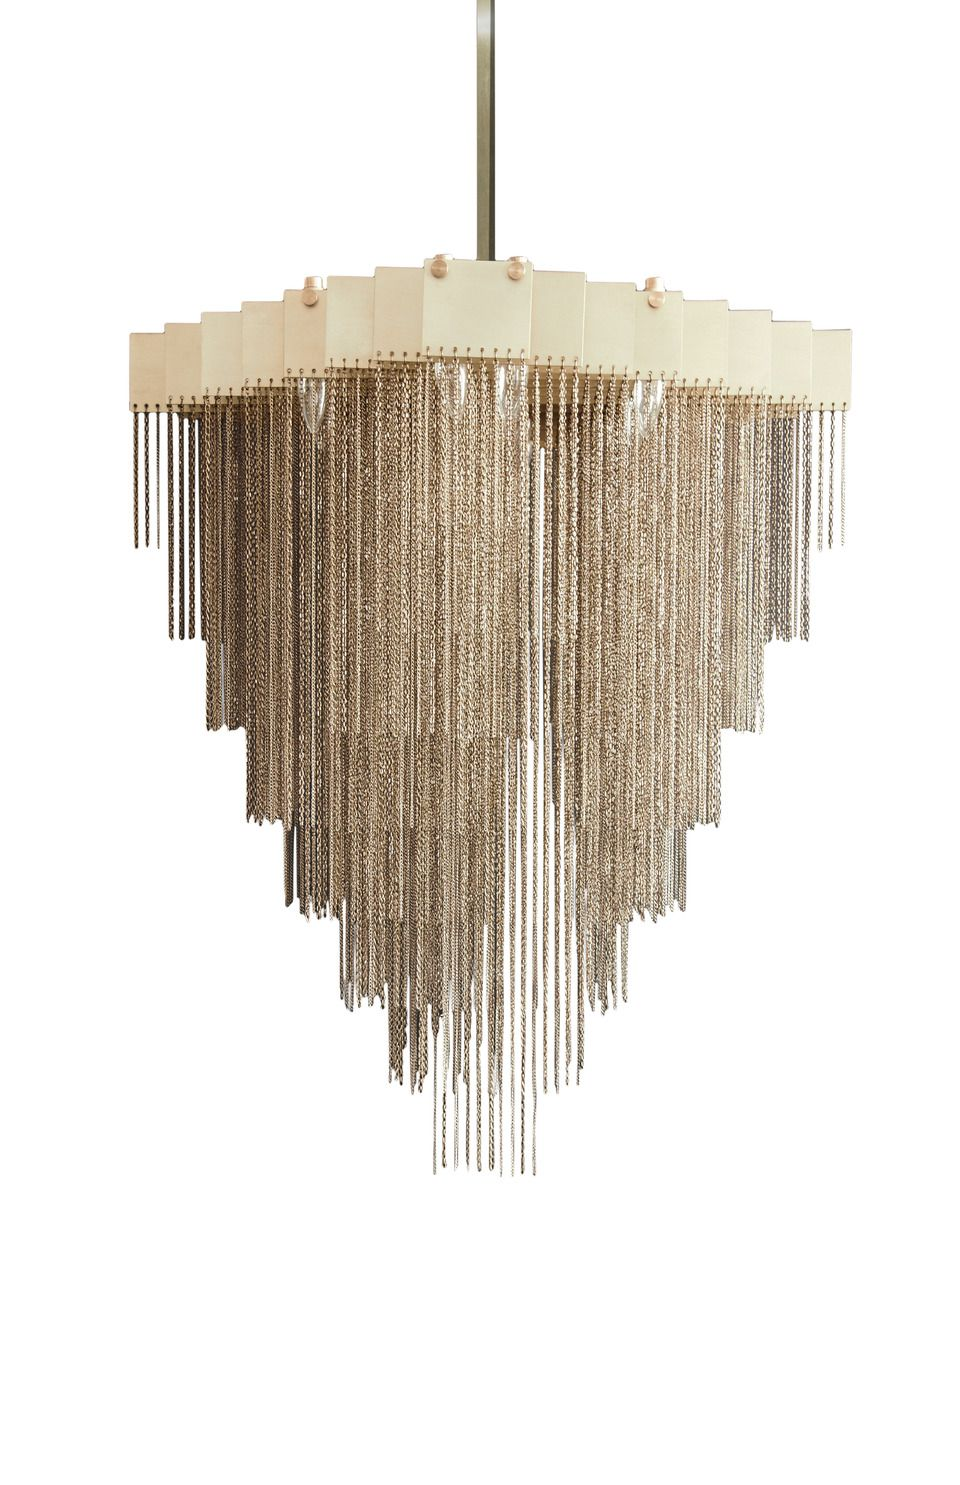 Buy brass kelly chandelier by gabriel scott ceiling lighting buy brass kelly chandelier by gabriel scott ceiling lighting dering hall aloadofball Image collections